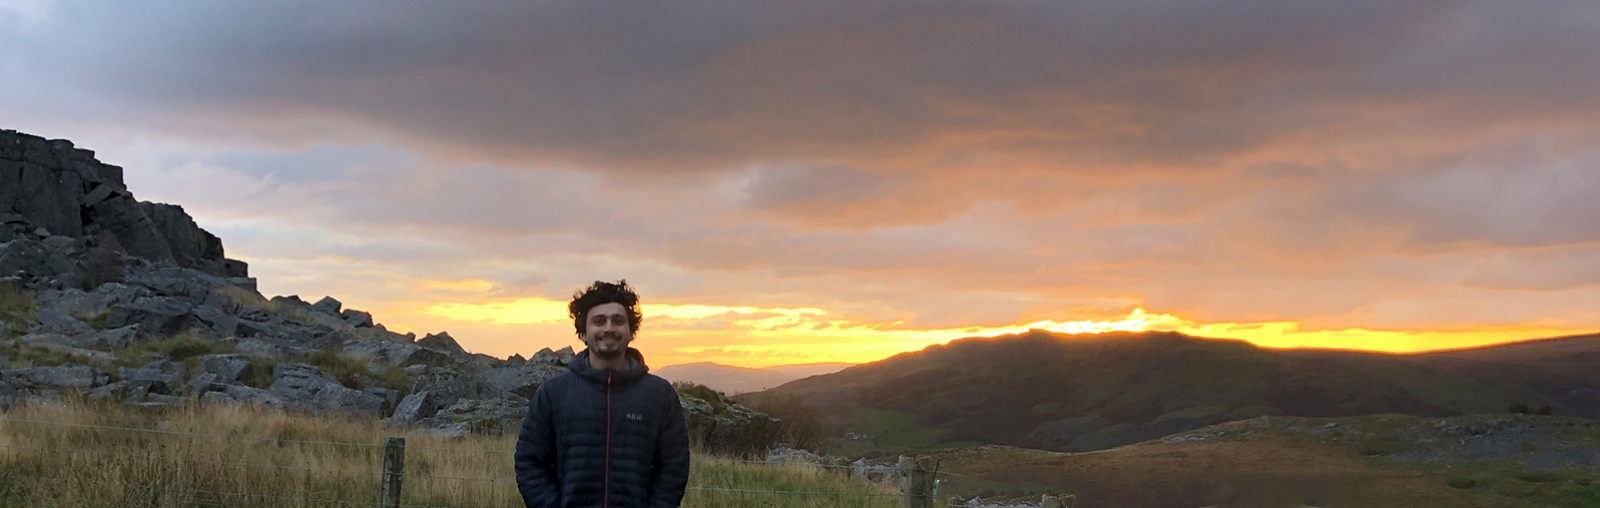 Kaan Cav '21 studying Physics at Cardiff University in Wales